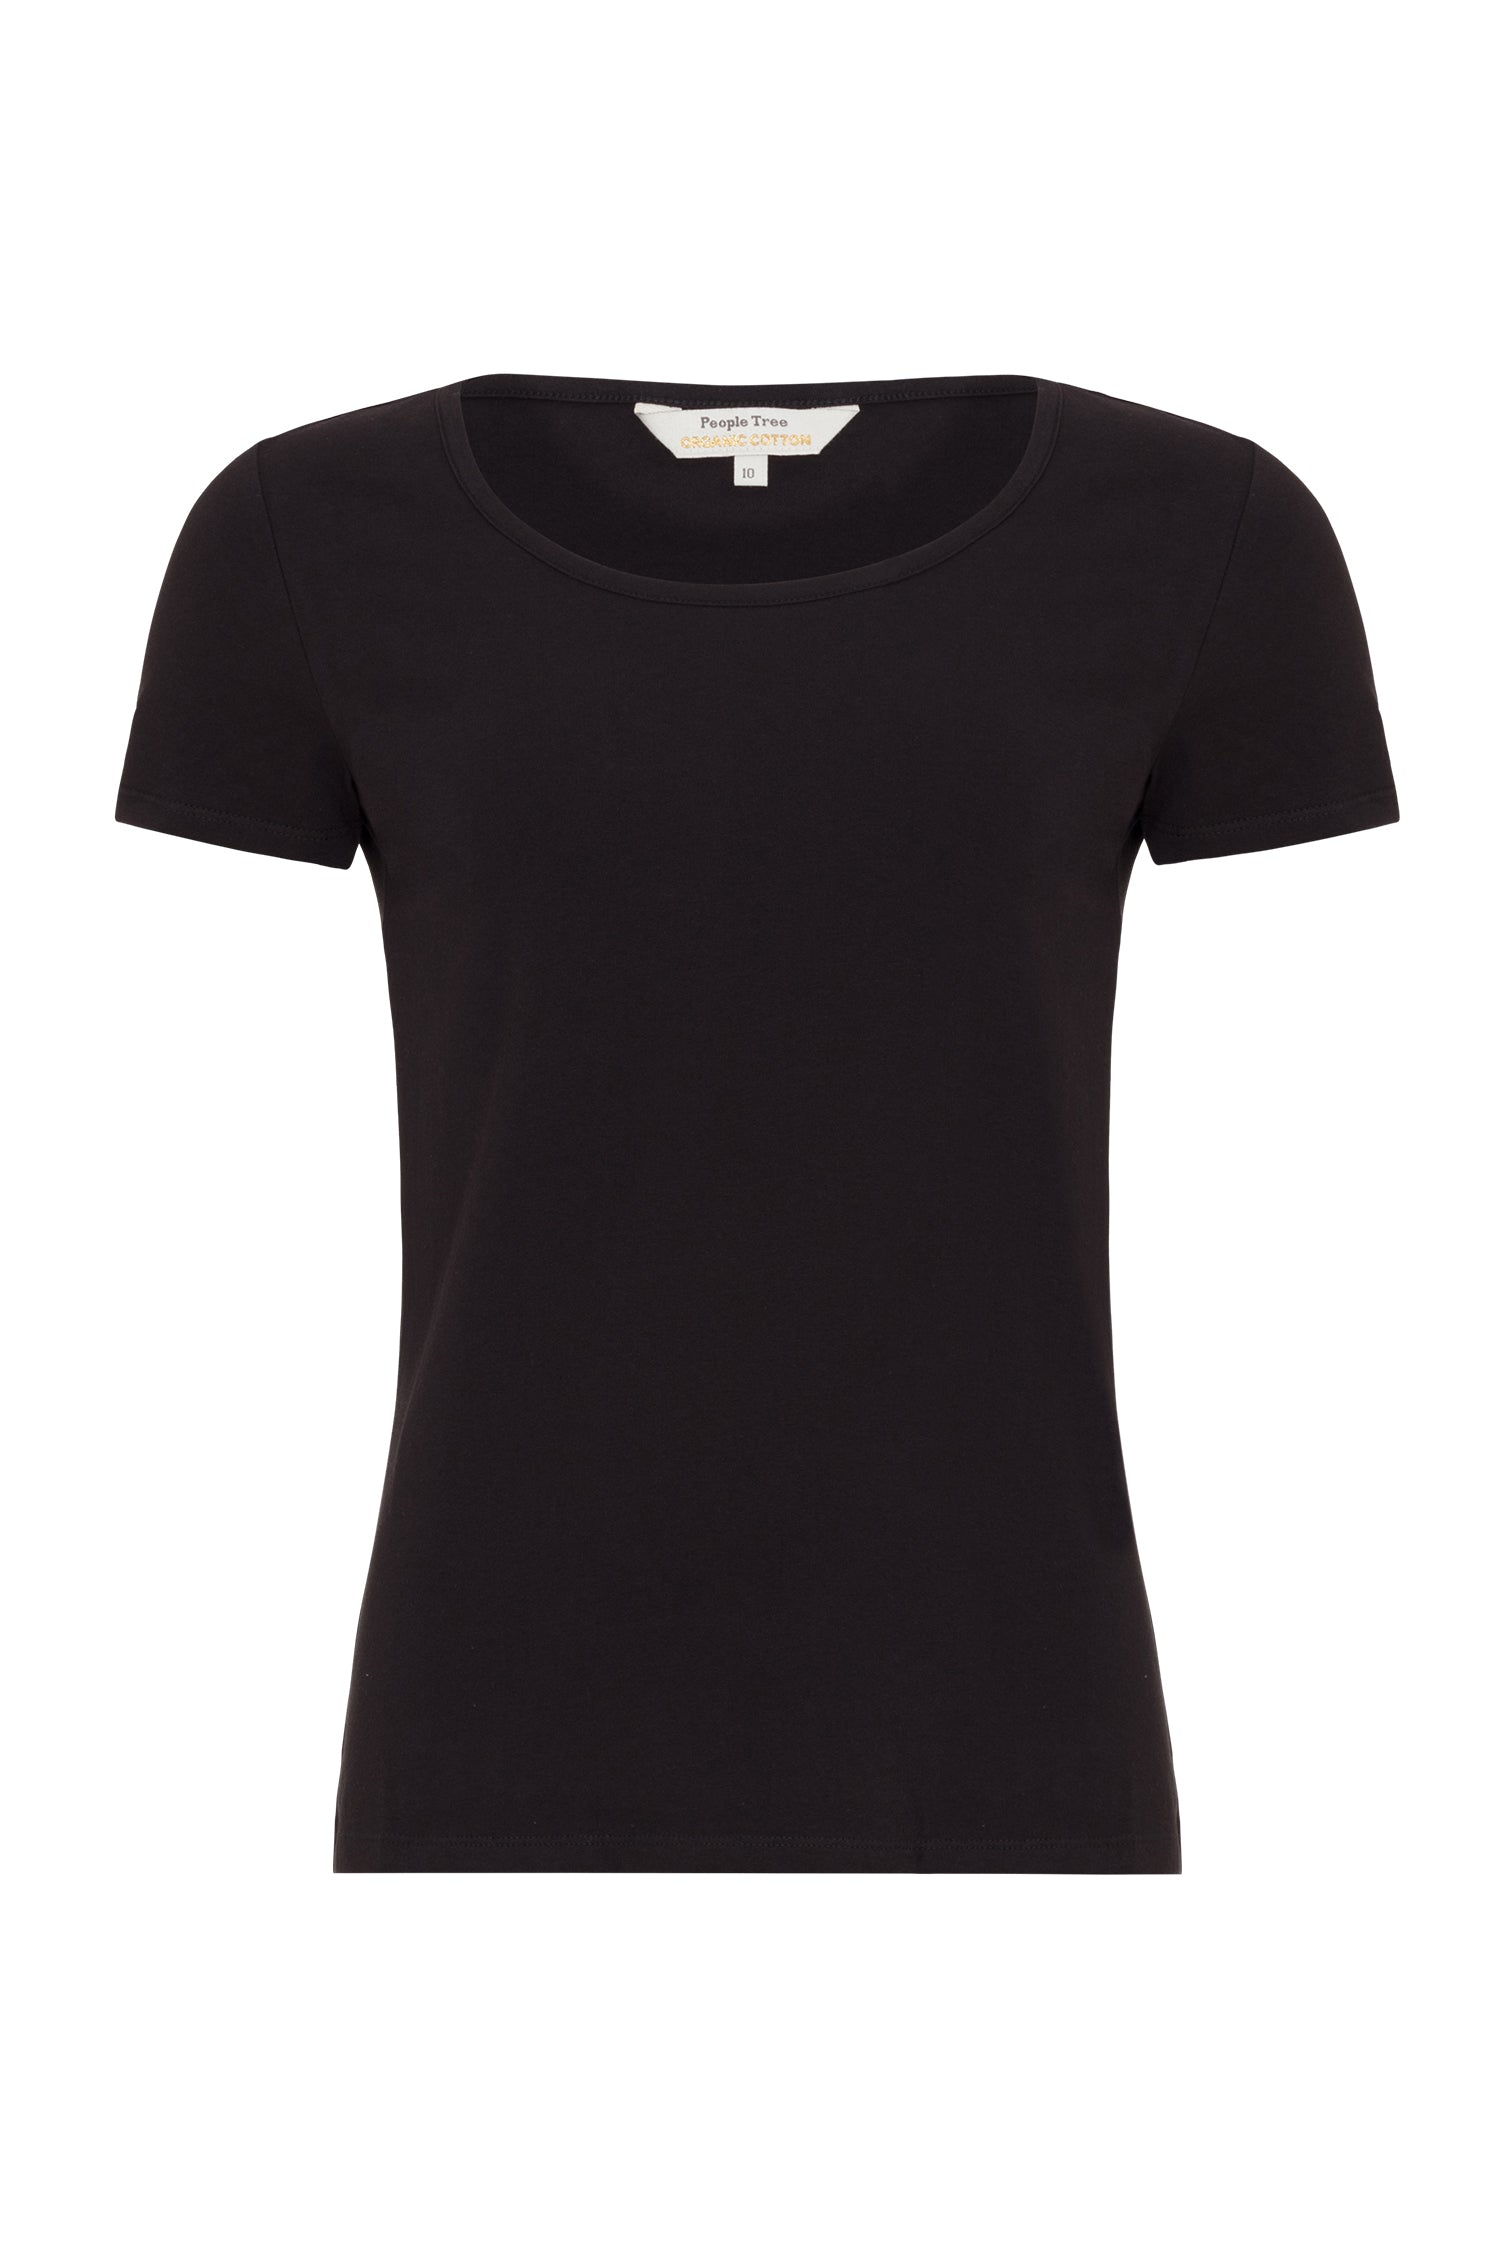 People Tree Gaia Tee for Ladies in Black